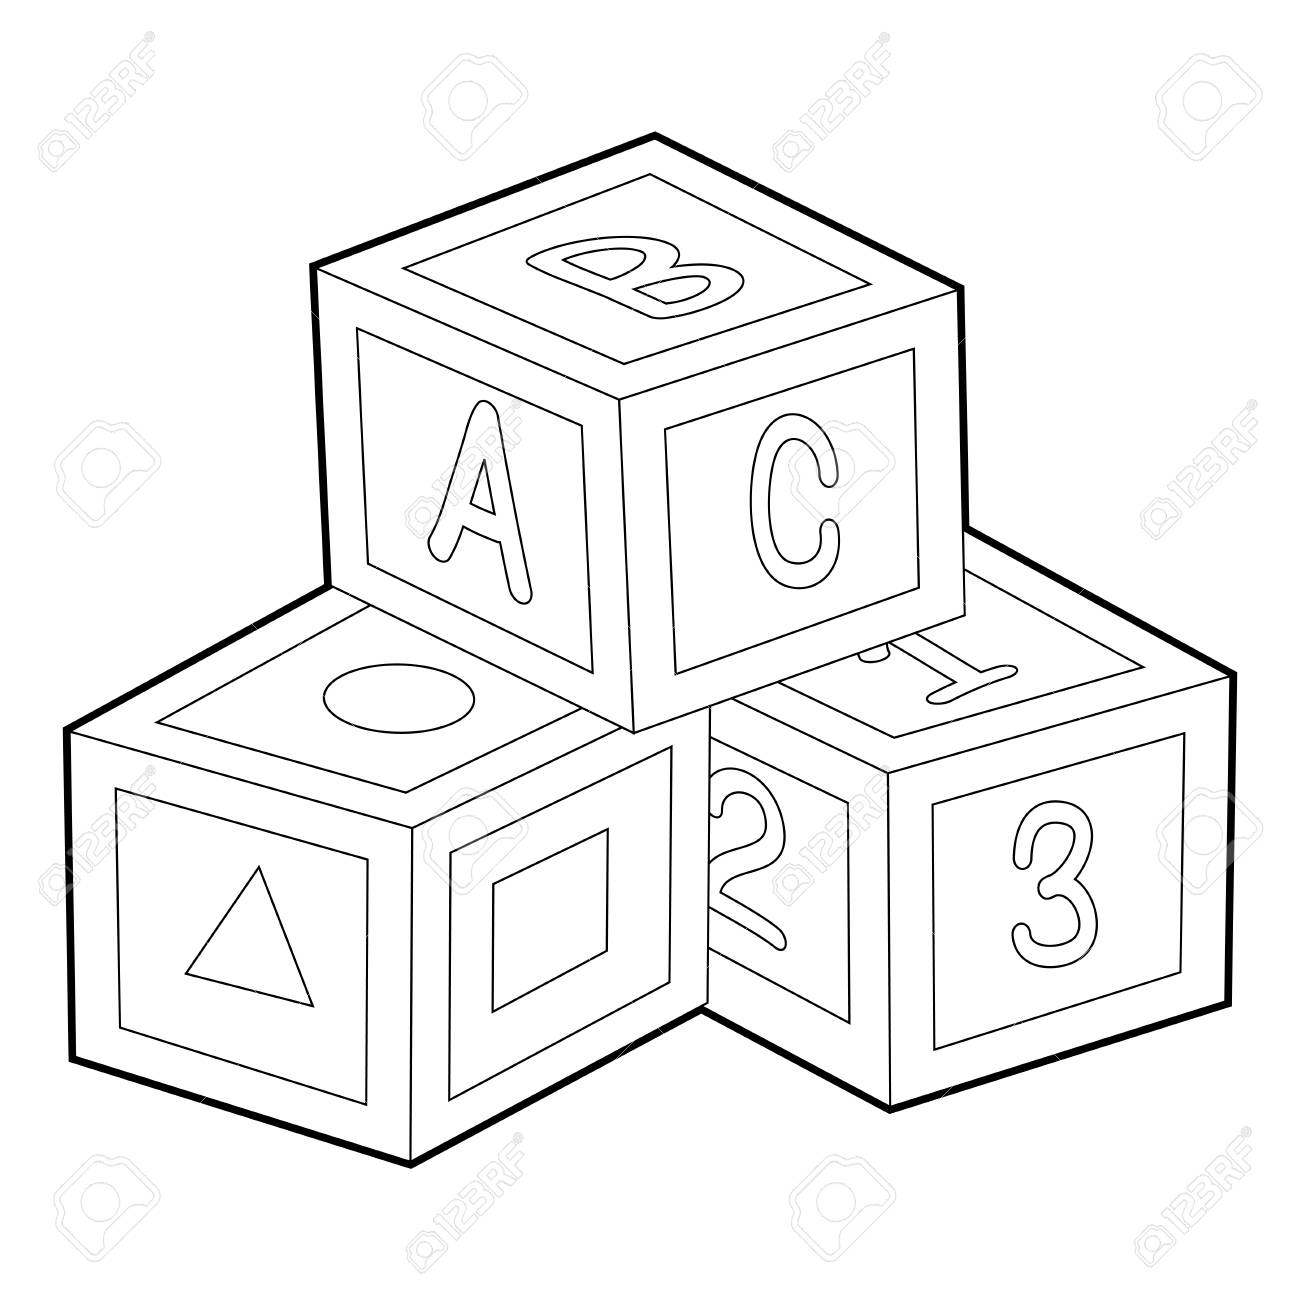 1300x1300 Coloring Book Outline Of Toy Blocks Royalty Free Cliparts, Vectors